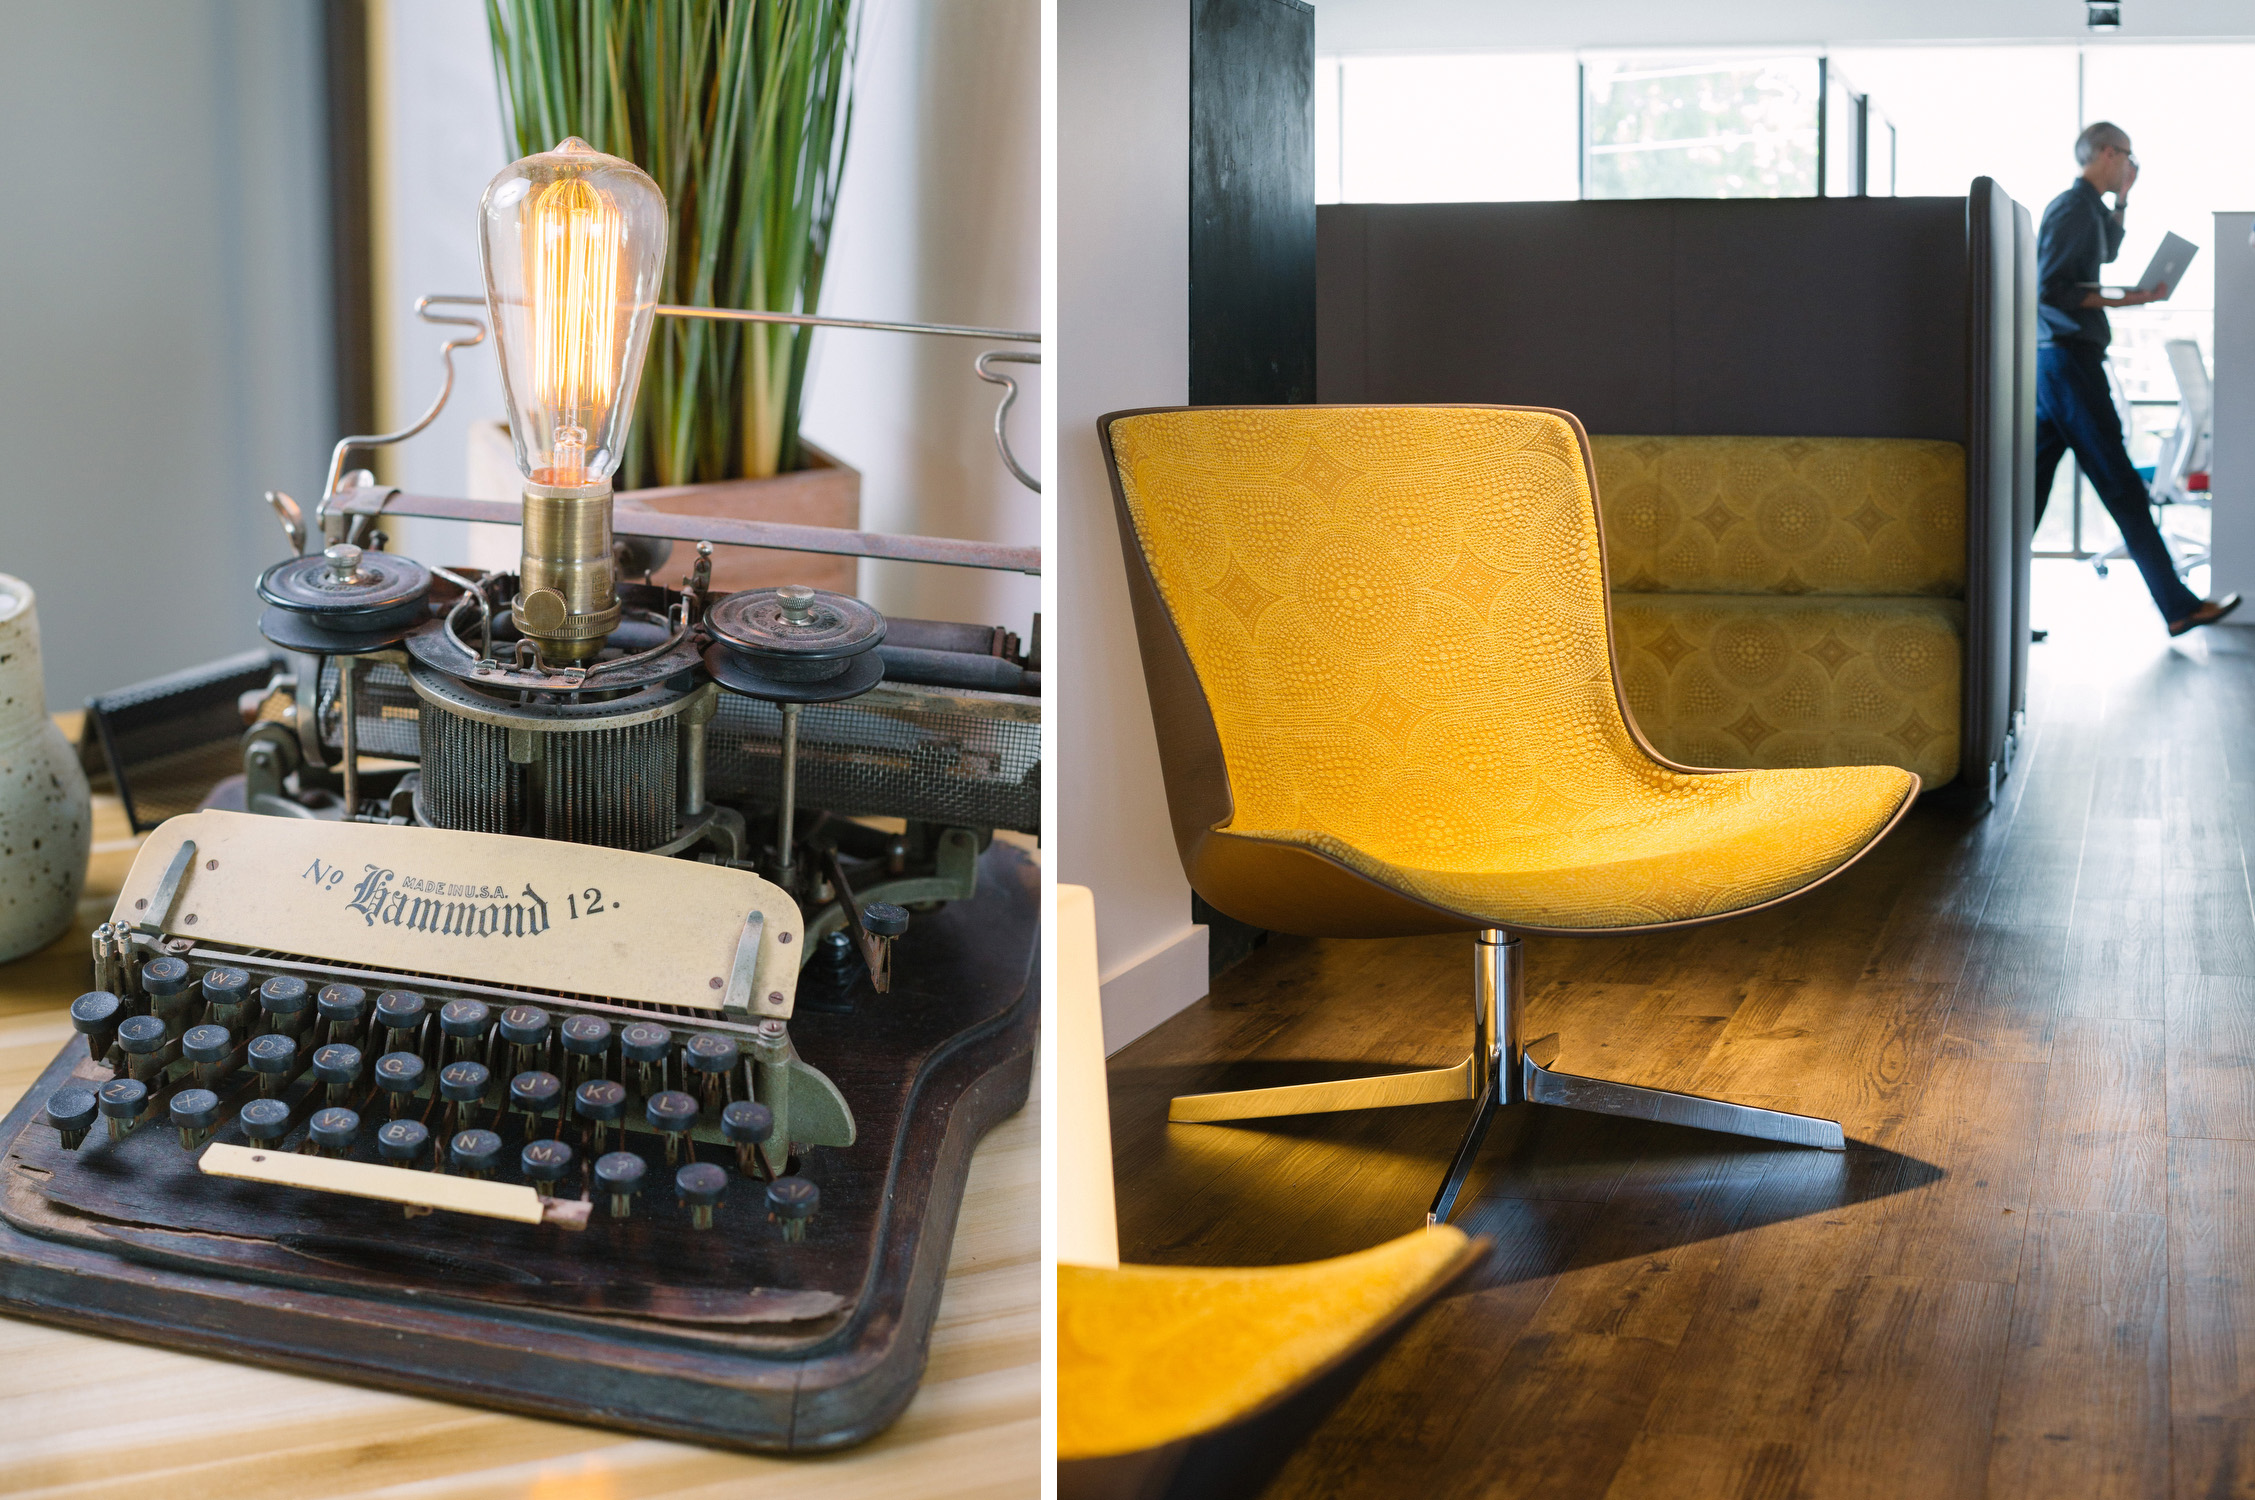 An antique Hammond No. 12 typewriter from Ellecor Design and Gifts is on display at the entrance to CAST Workspace Cooperative in Springfield, Mo. on July 19, 2016. Photos by Brad Zweerink.